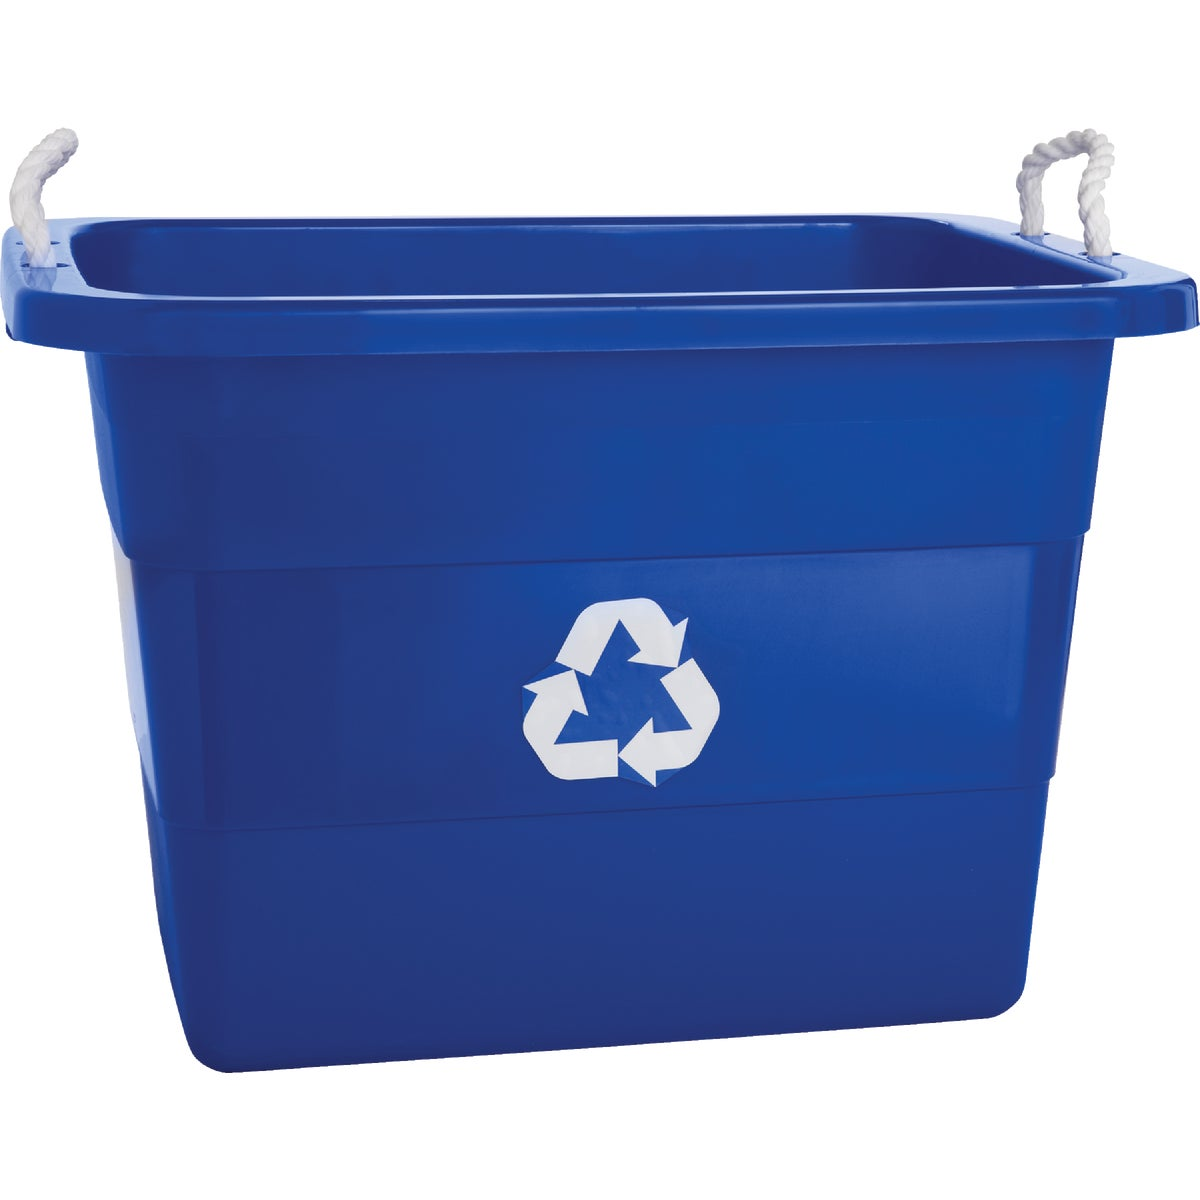 19GAL RECYCLE TUB - TU0105/6 by United Solutions